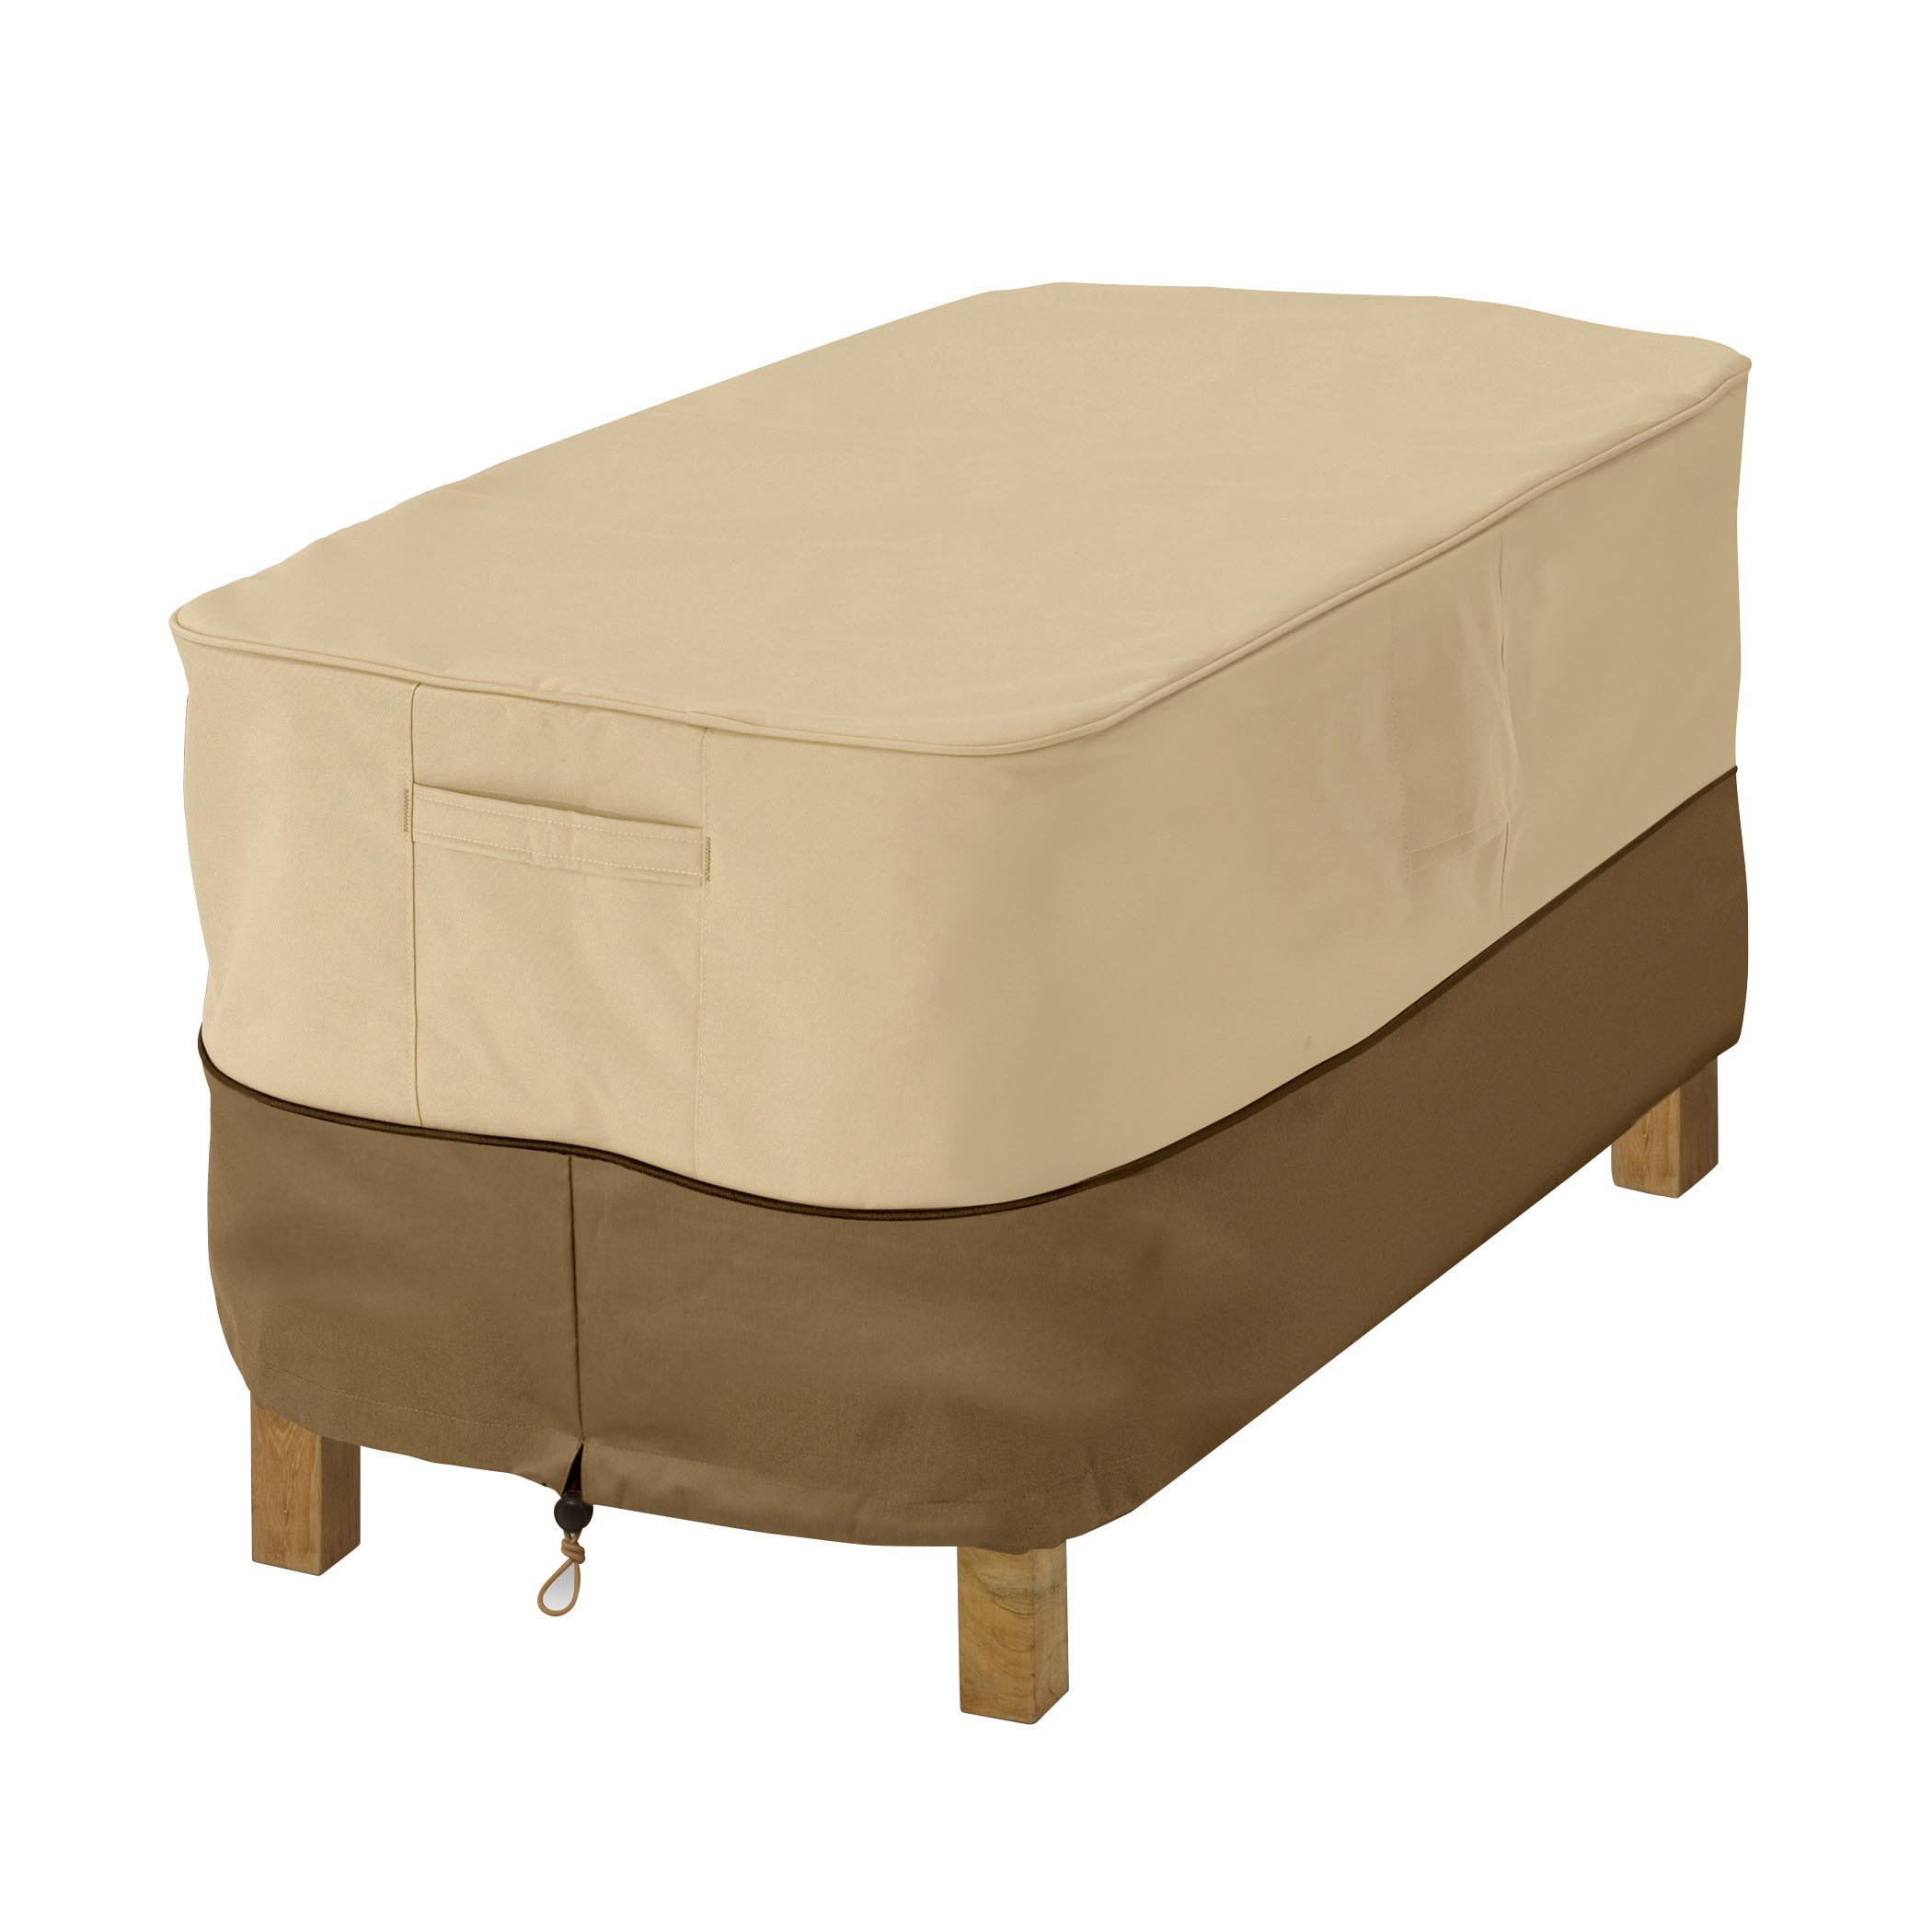 Patio coffee table cover coffee table design ideas for Coffee table cover ideas